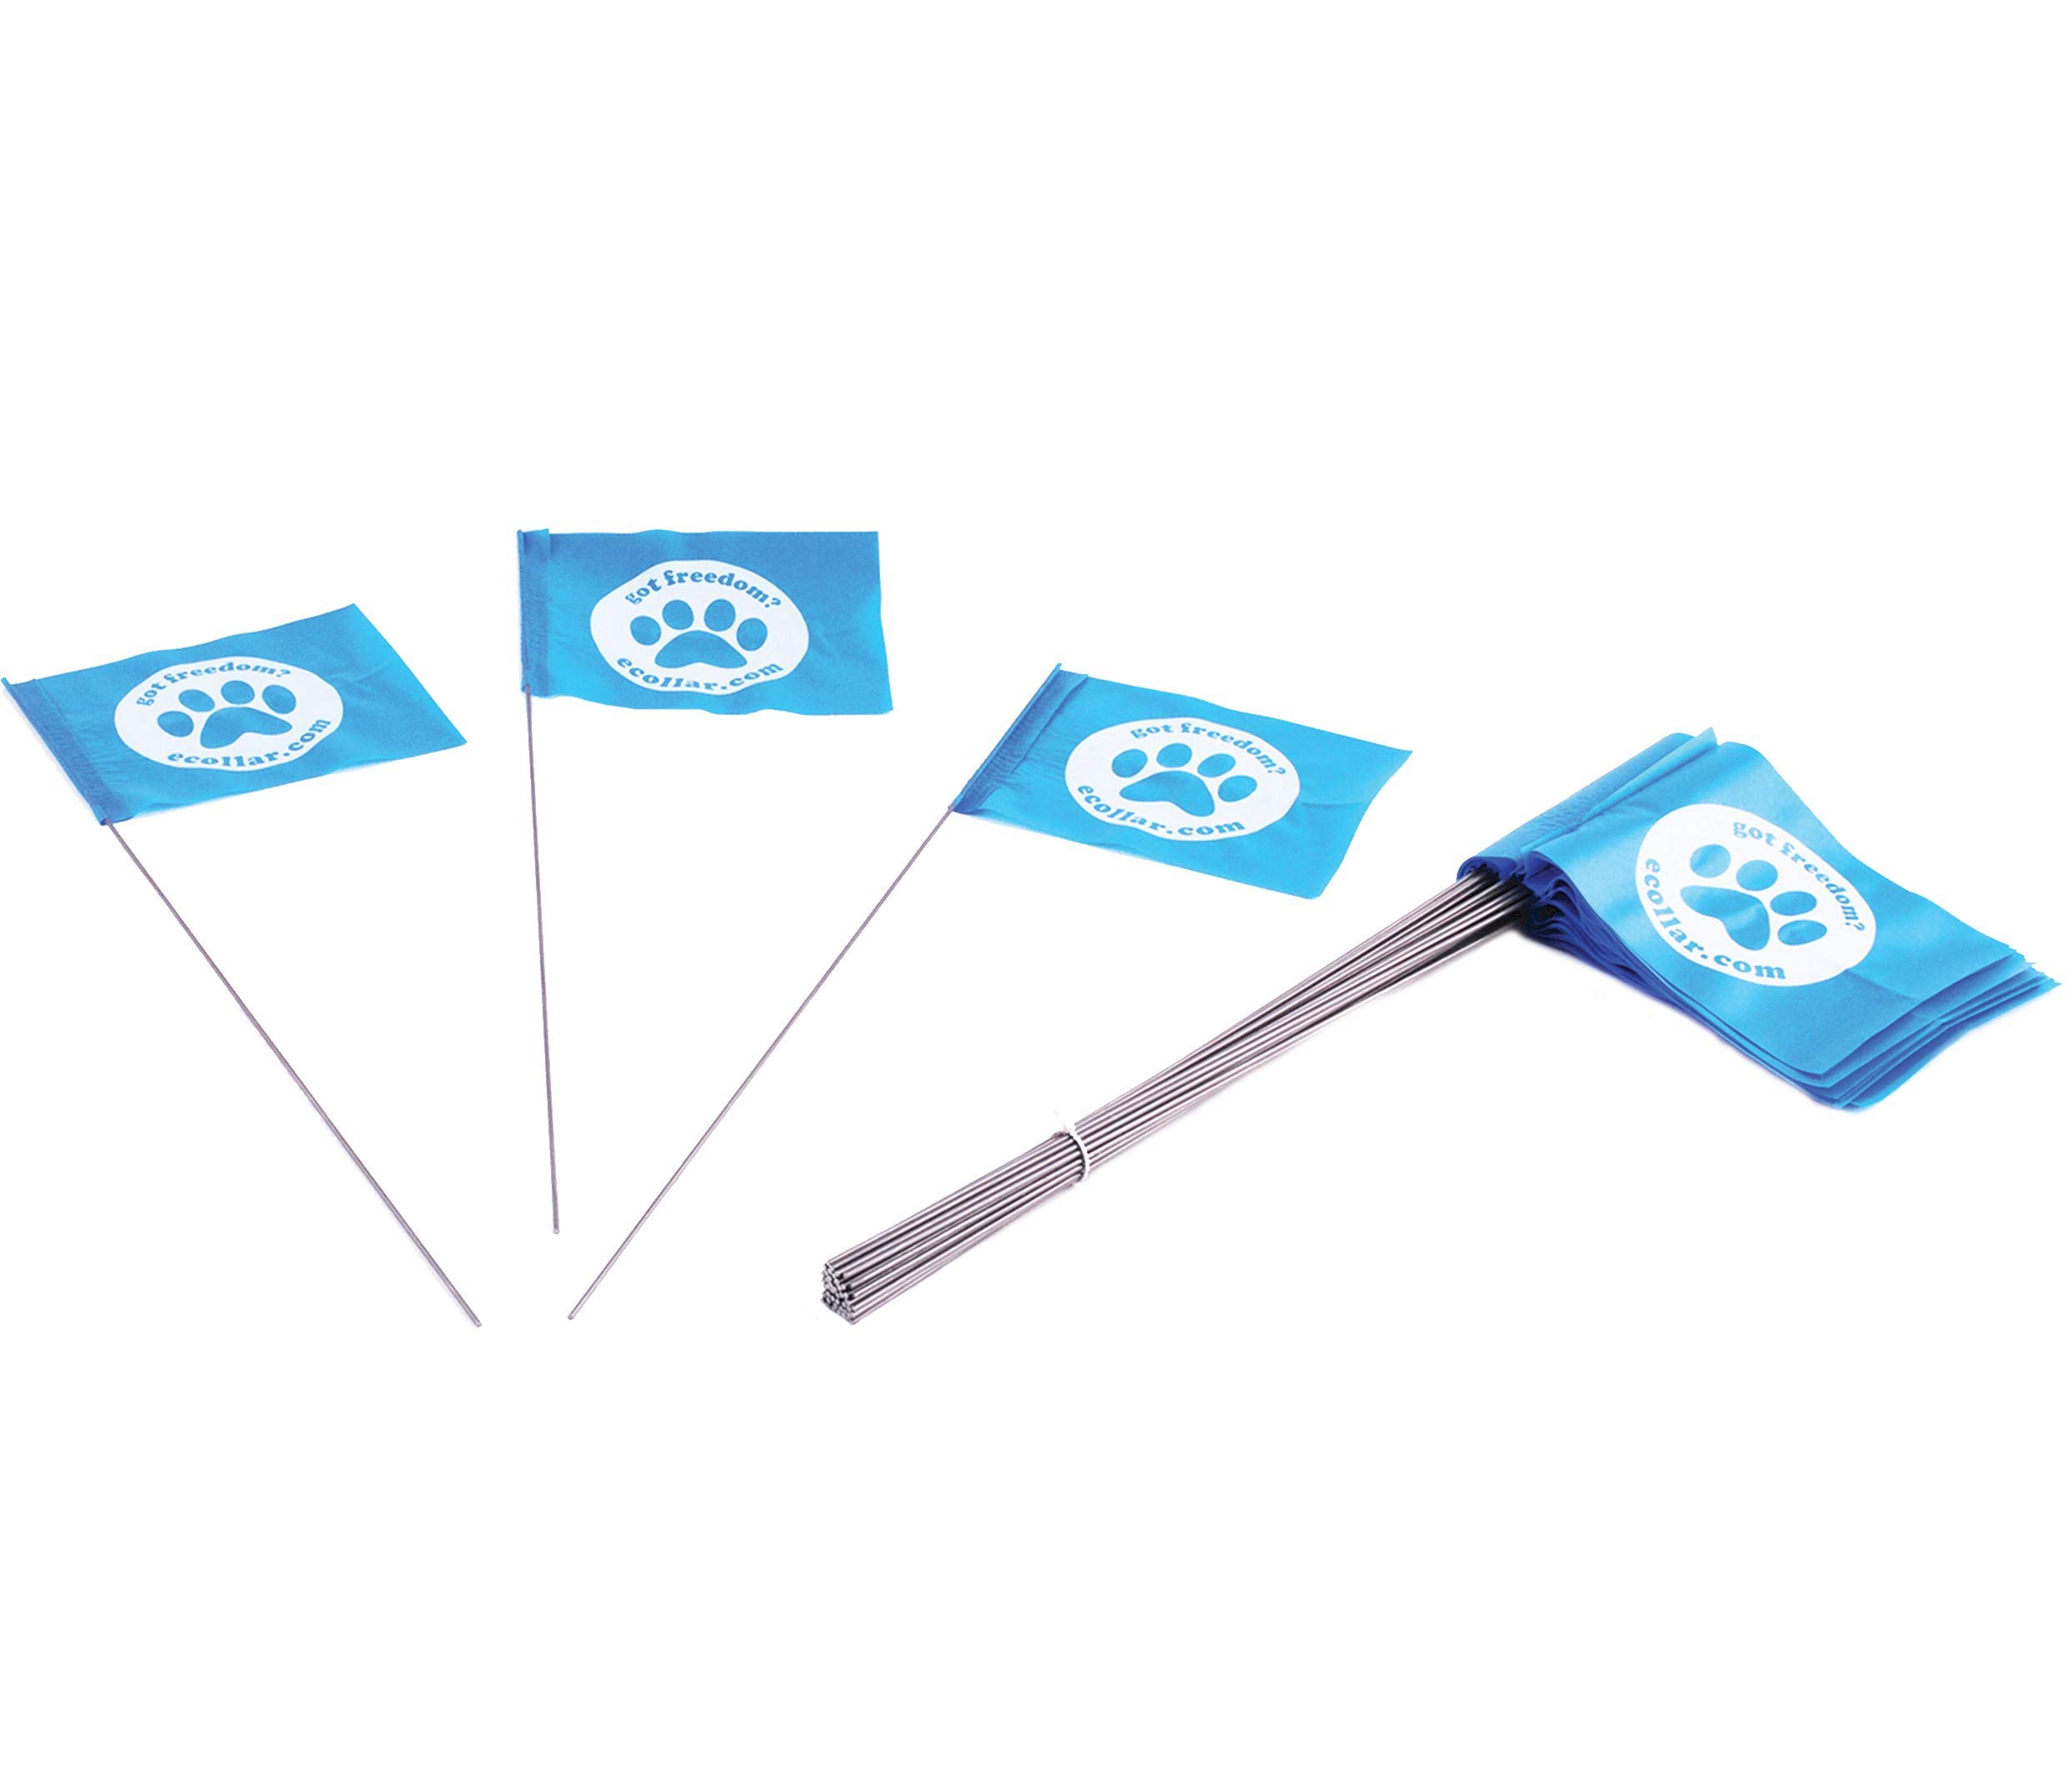 Educator FLAGS-50 Boundary Flags for E-Fence Underground Fence Containment System for Dogs, (Set of 50) by Educator